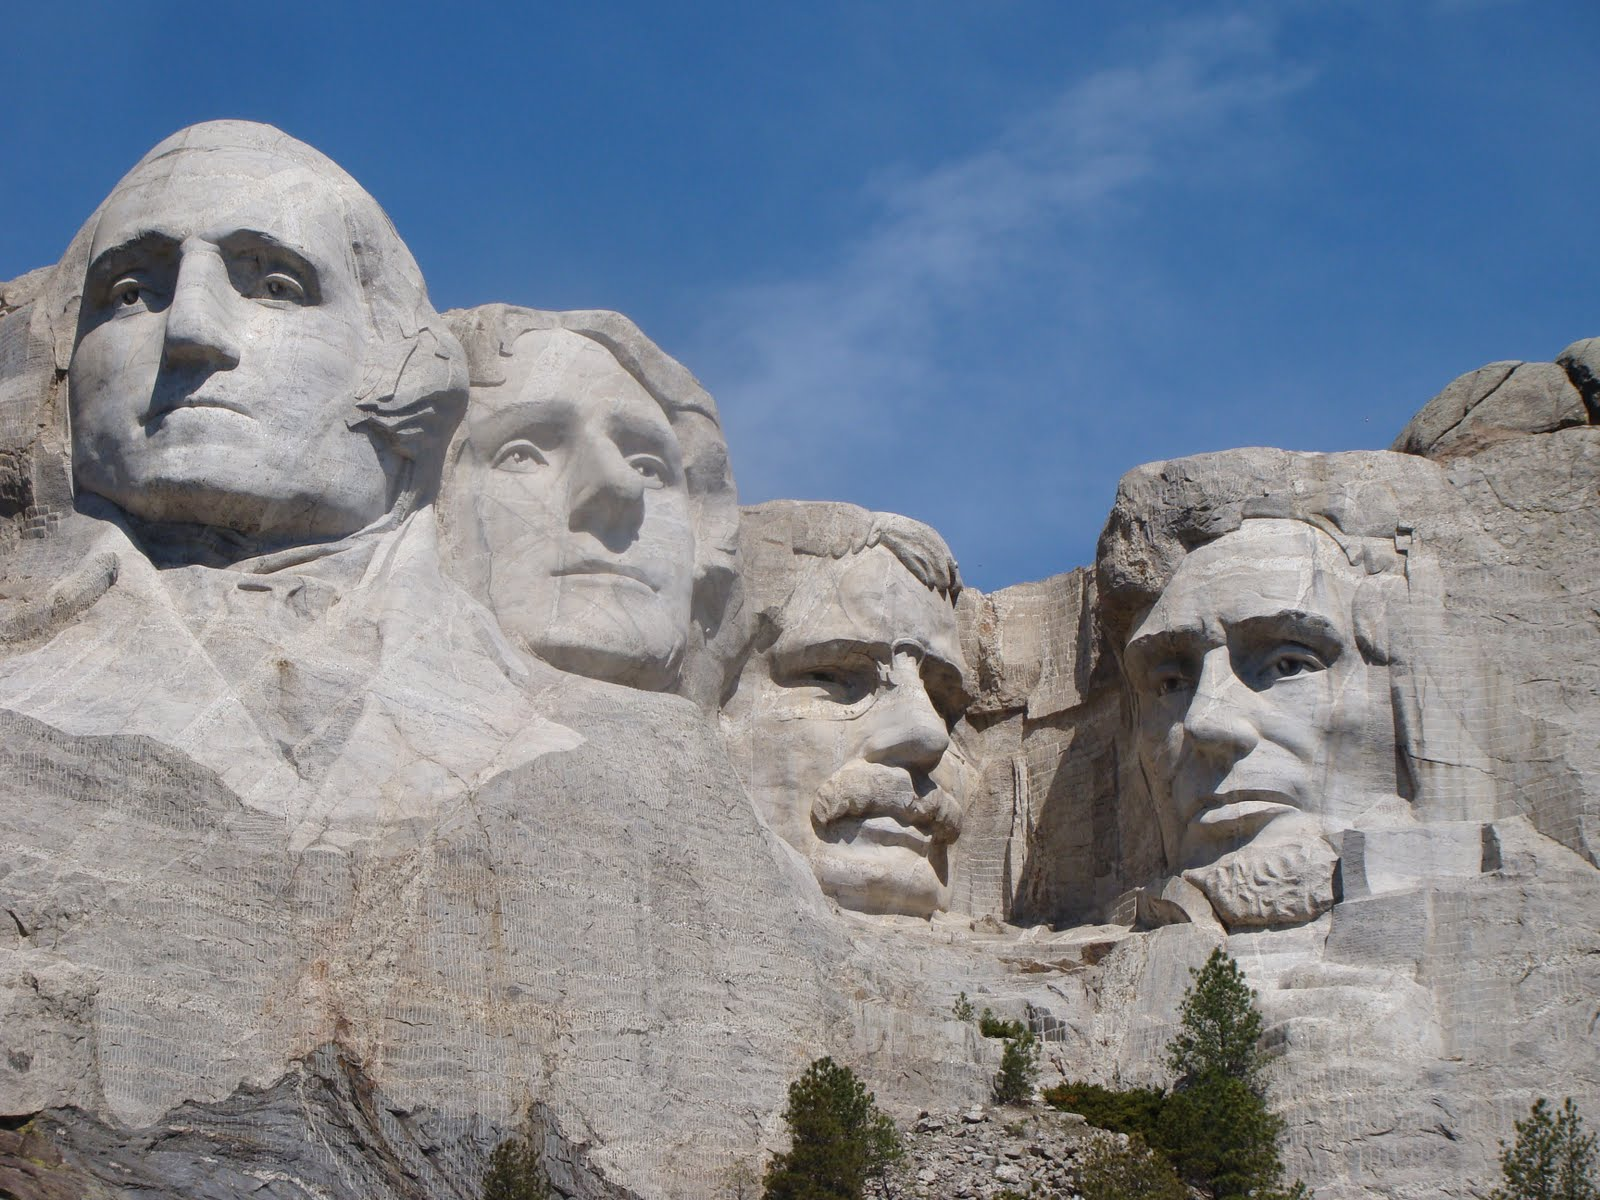 Download image Mount Rushmore PC, Android, iPhone and iPad. Wallpapers ...